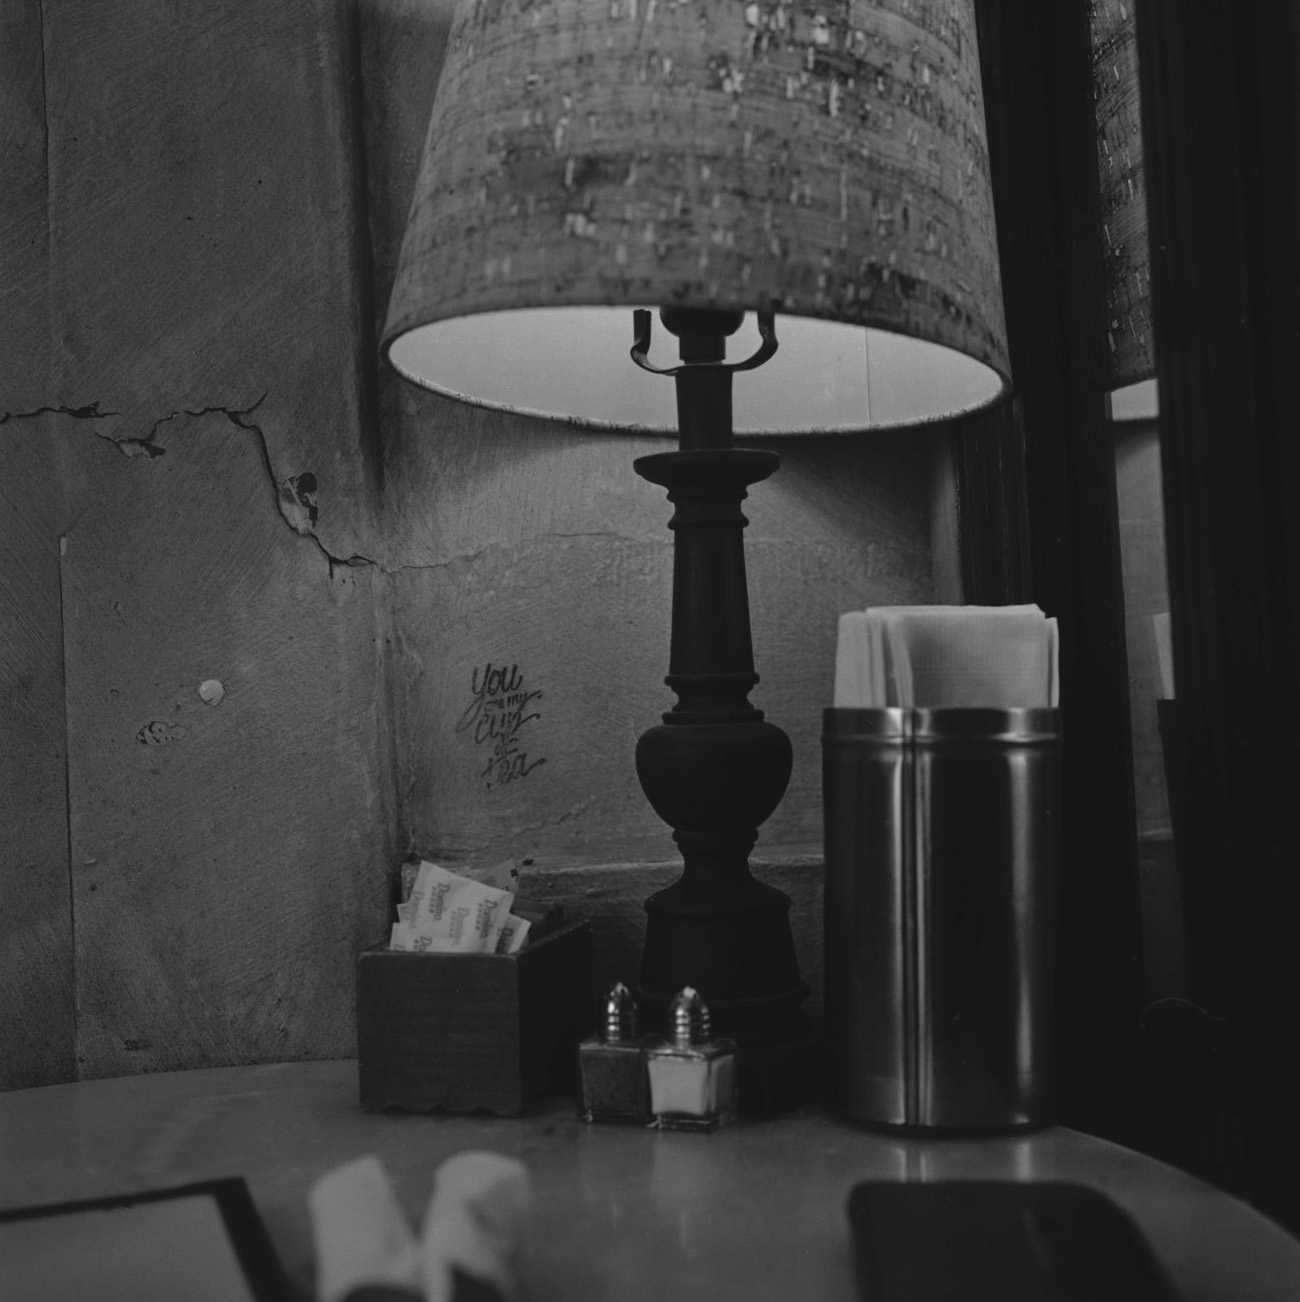 Black and White, Lamp, Table, Salt and Pepper